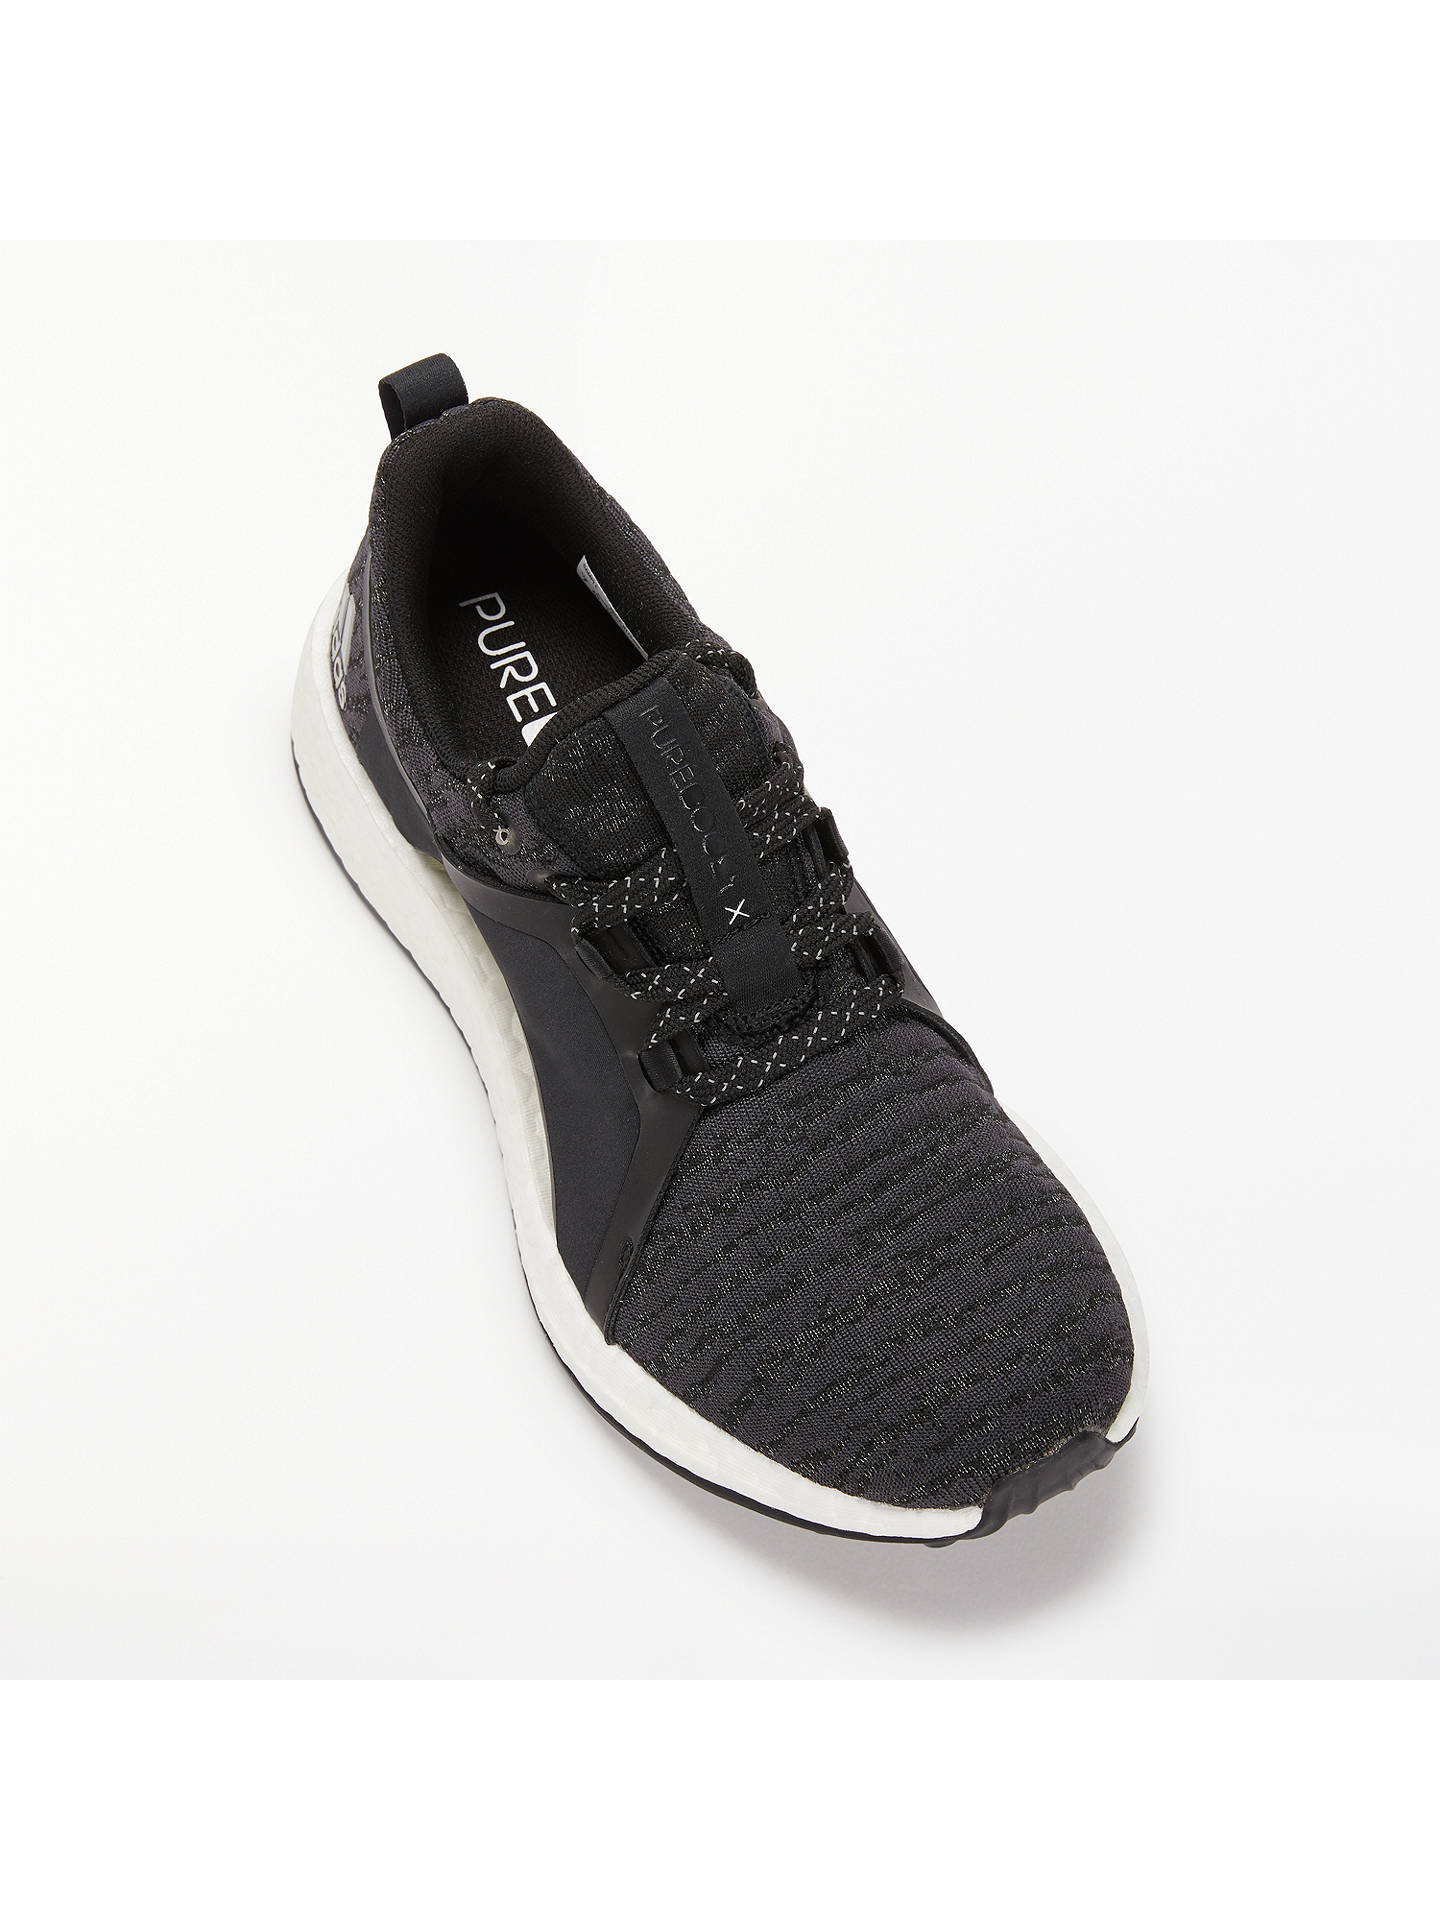 Buyadidas Pure Boost X Women's Running Shoes, Carbon Grey, 4 Online at johnlewis.com